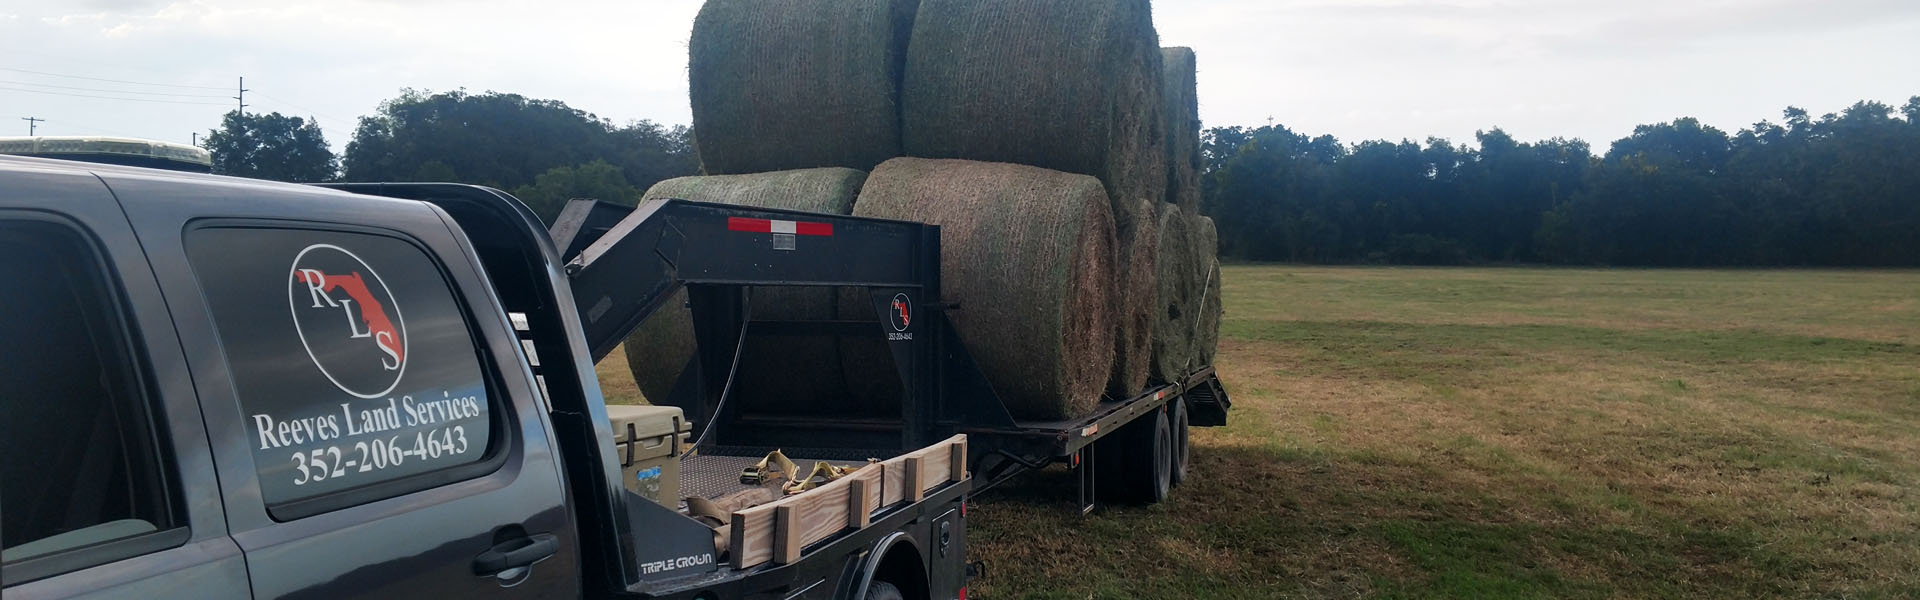 Bailing Hay In Florida